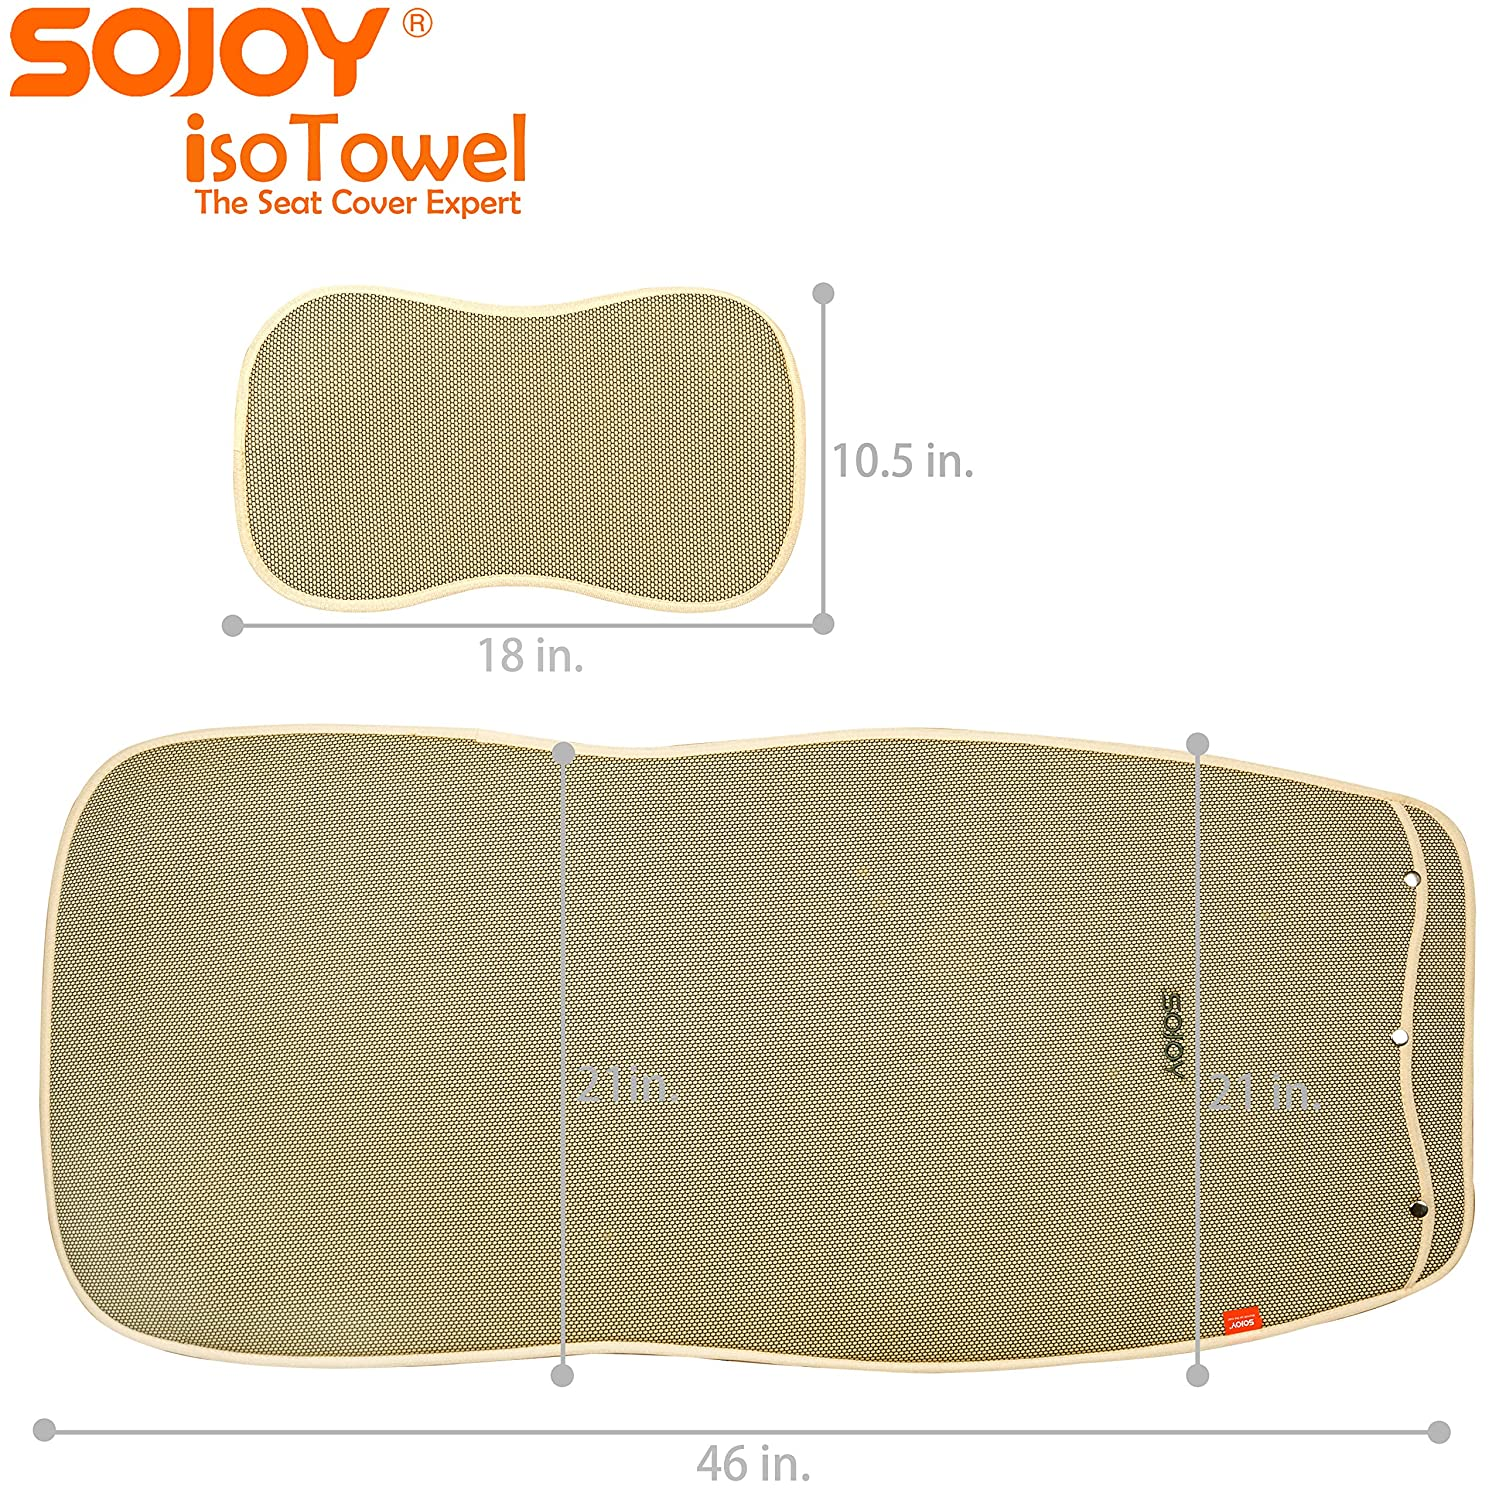 Sojoy Auto USA All-Weather with Quick-Dry No-Slip Technology Sojoy IsoTowel Car Seat Cover Carbon Black Microfiber Seat Protector Car seat Protection for All Workouts